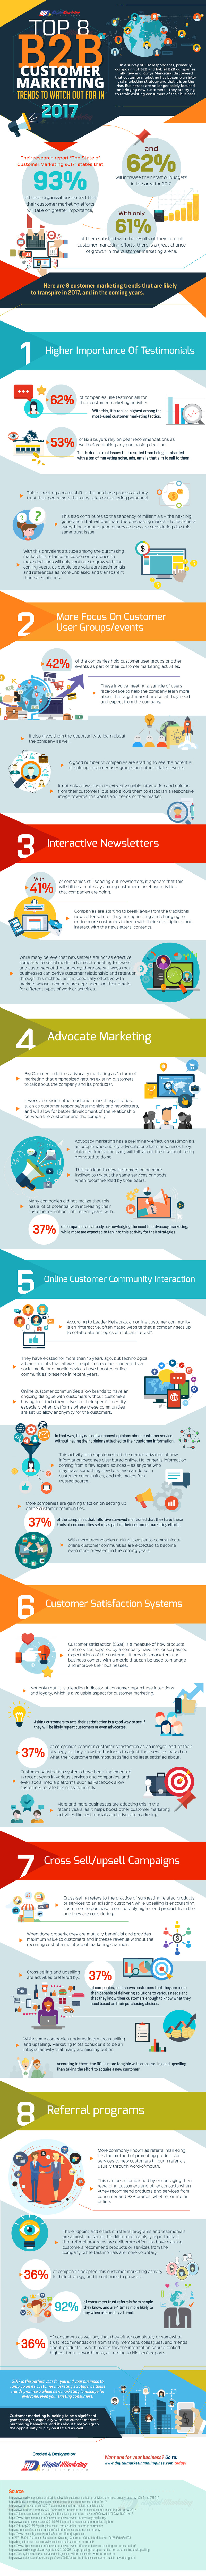 The Top 8 B2B Customer Marketing Trends in 2017 [Infographic]   Social Media Today